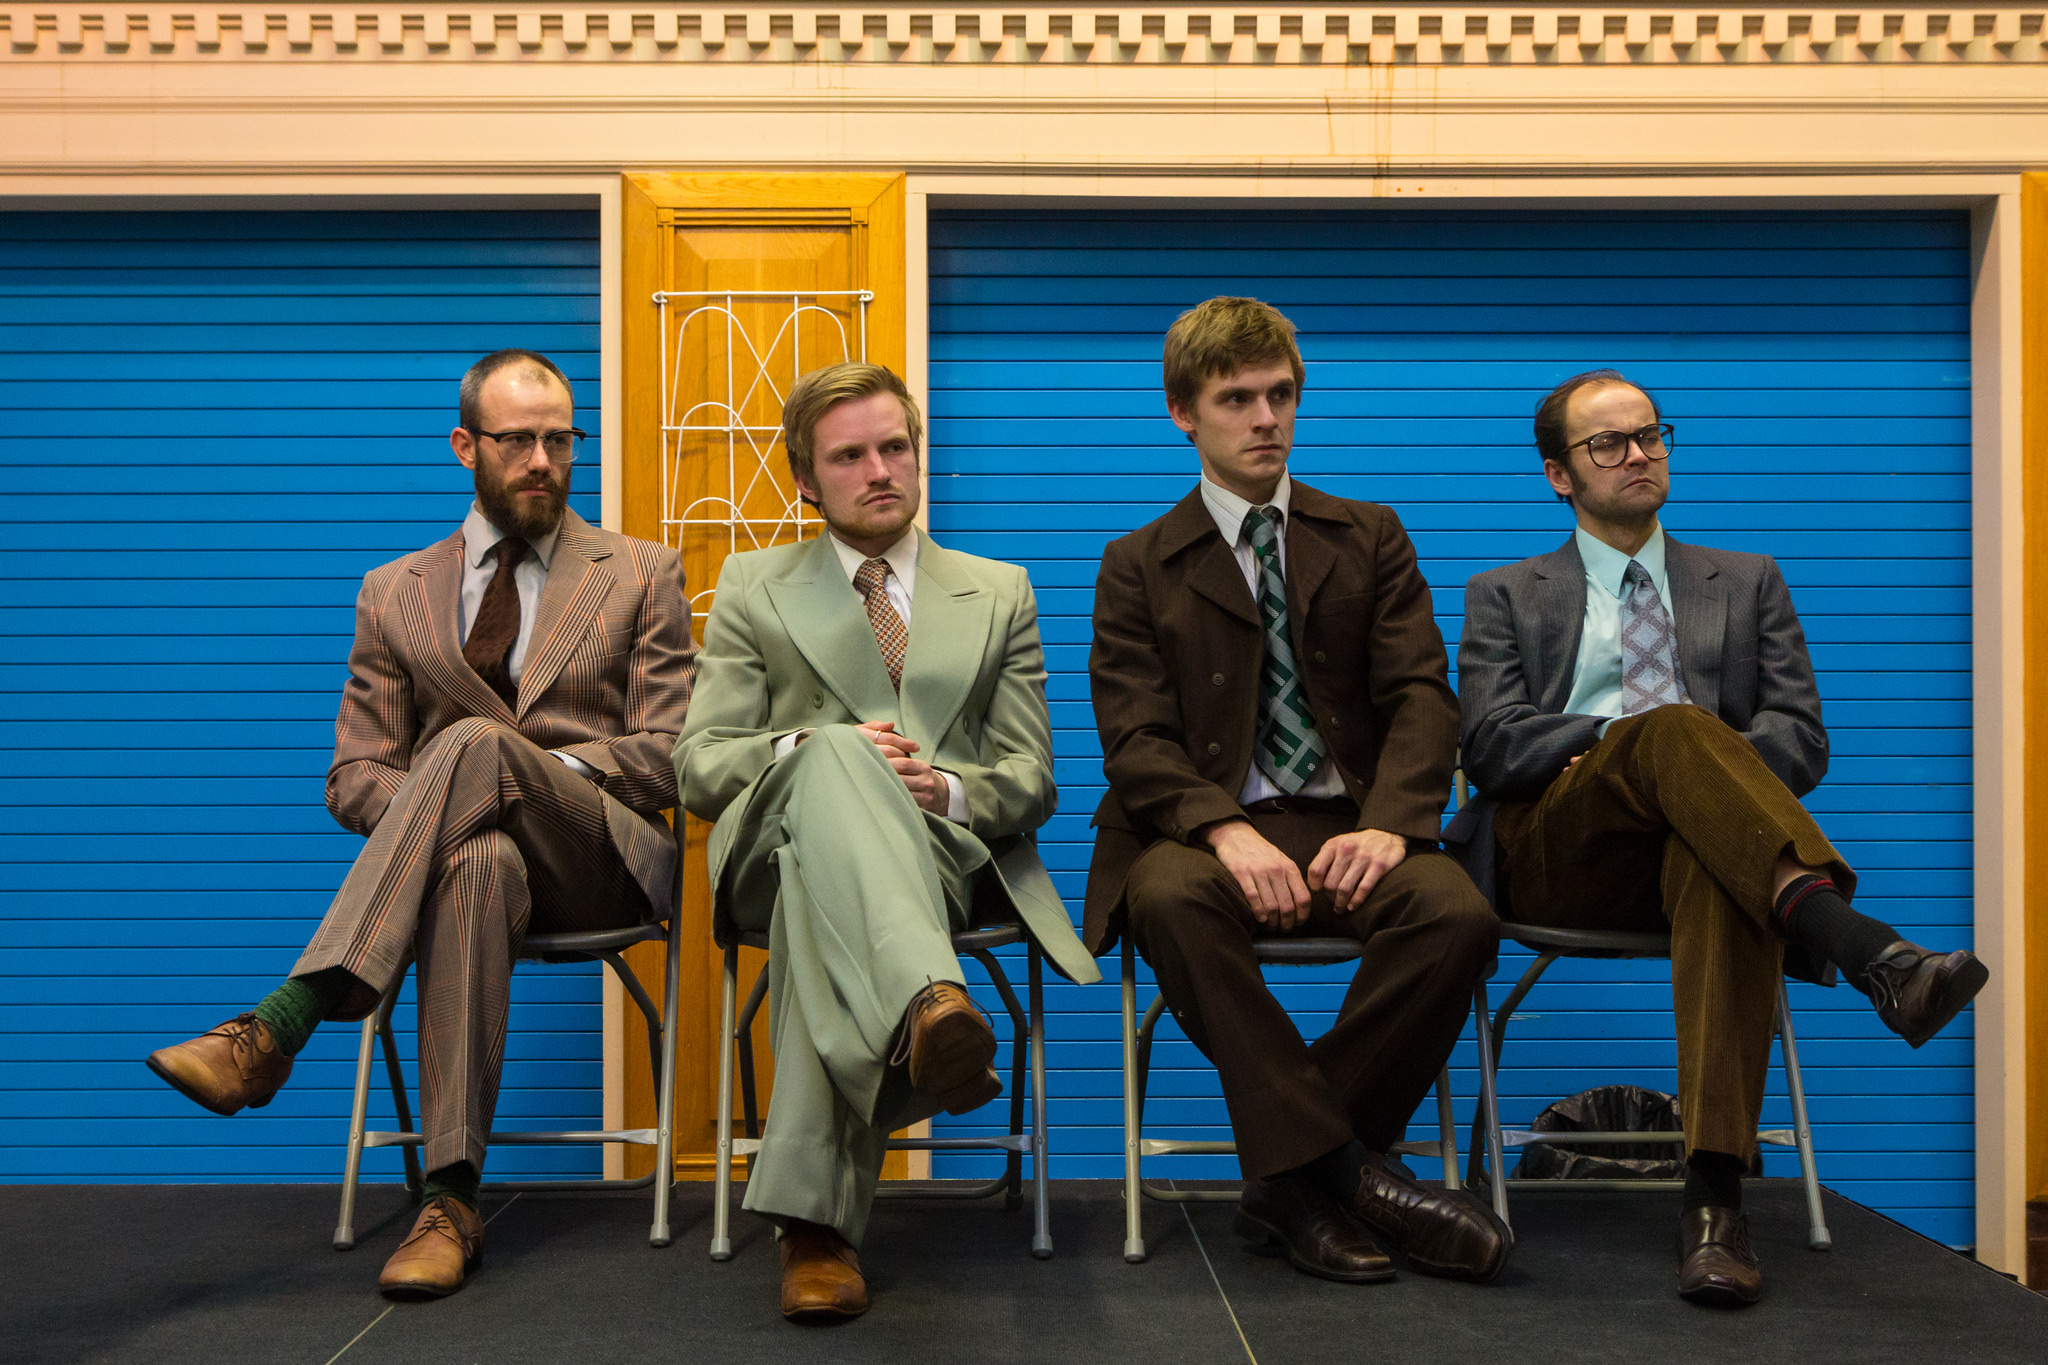 OLIVER DEVOTI AS MICHAEL STEED, DEAN GREGORY AS KEN PILLING, JOSEPH CARTER AS RAY GOSLING, MICHAEL JUSTICE AS ALLAN HORSFALL